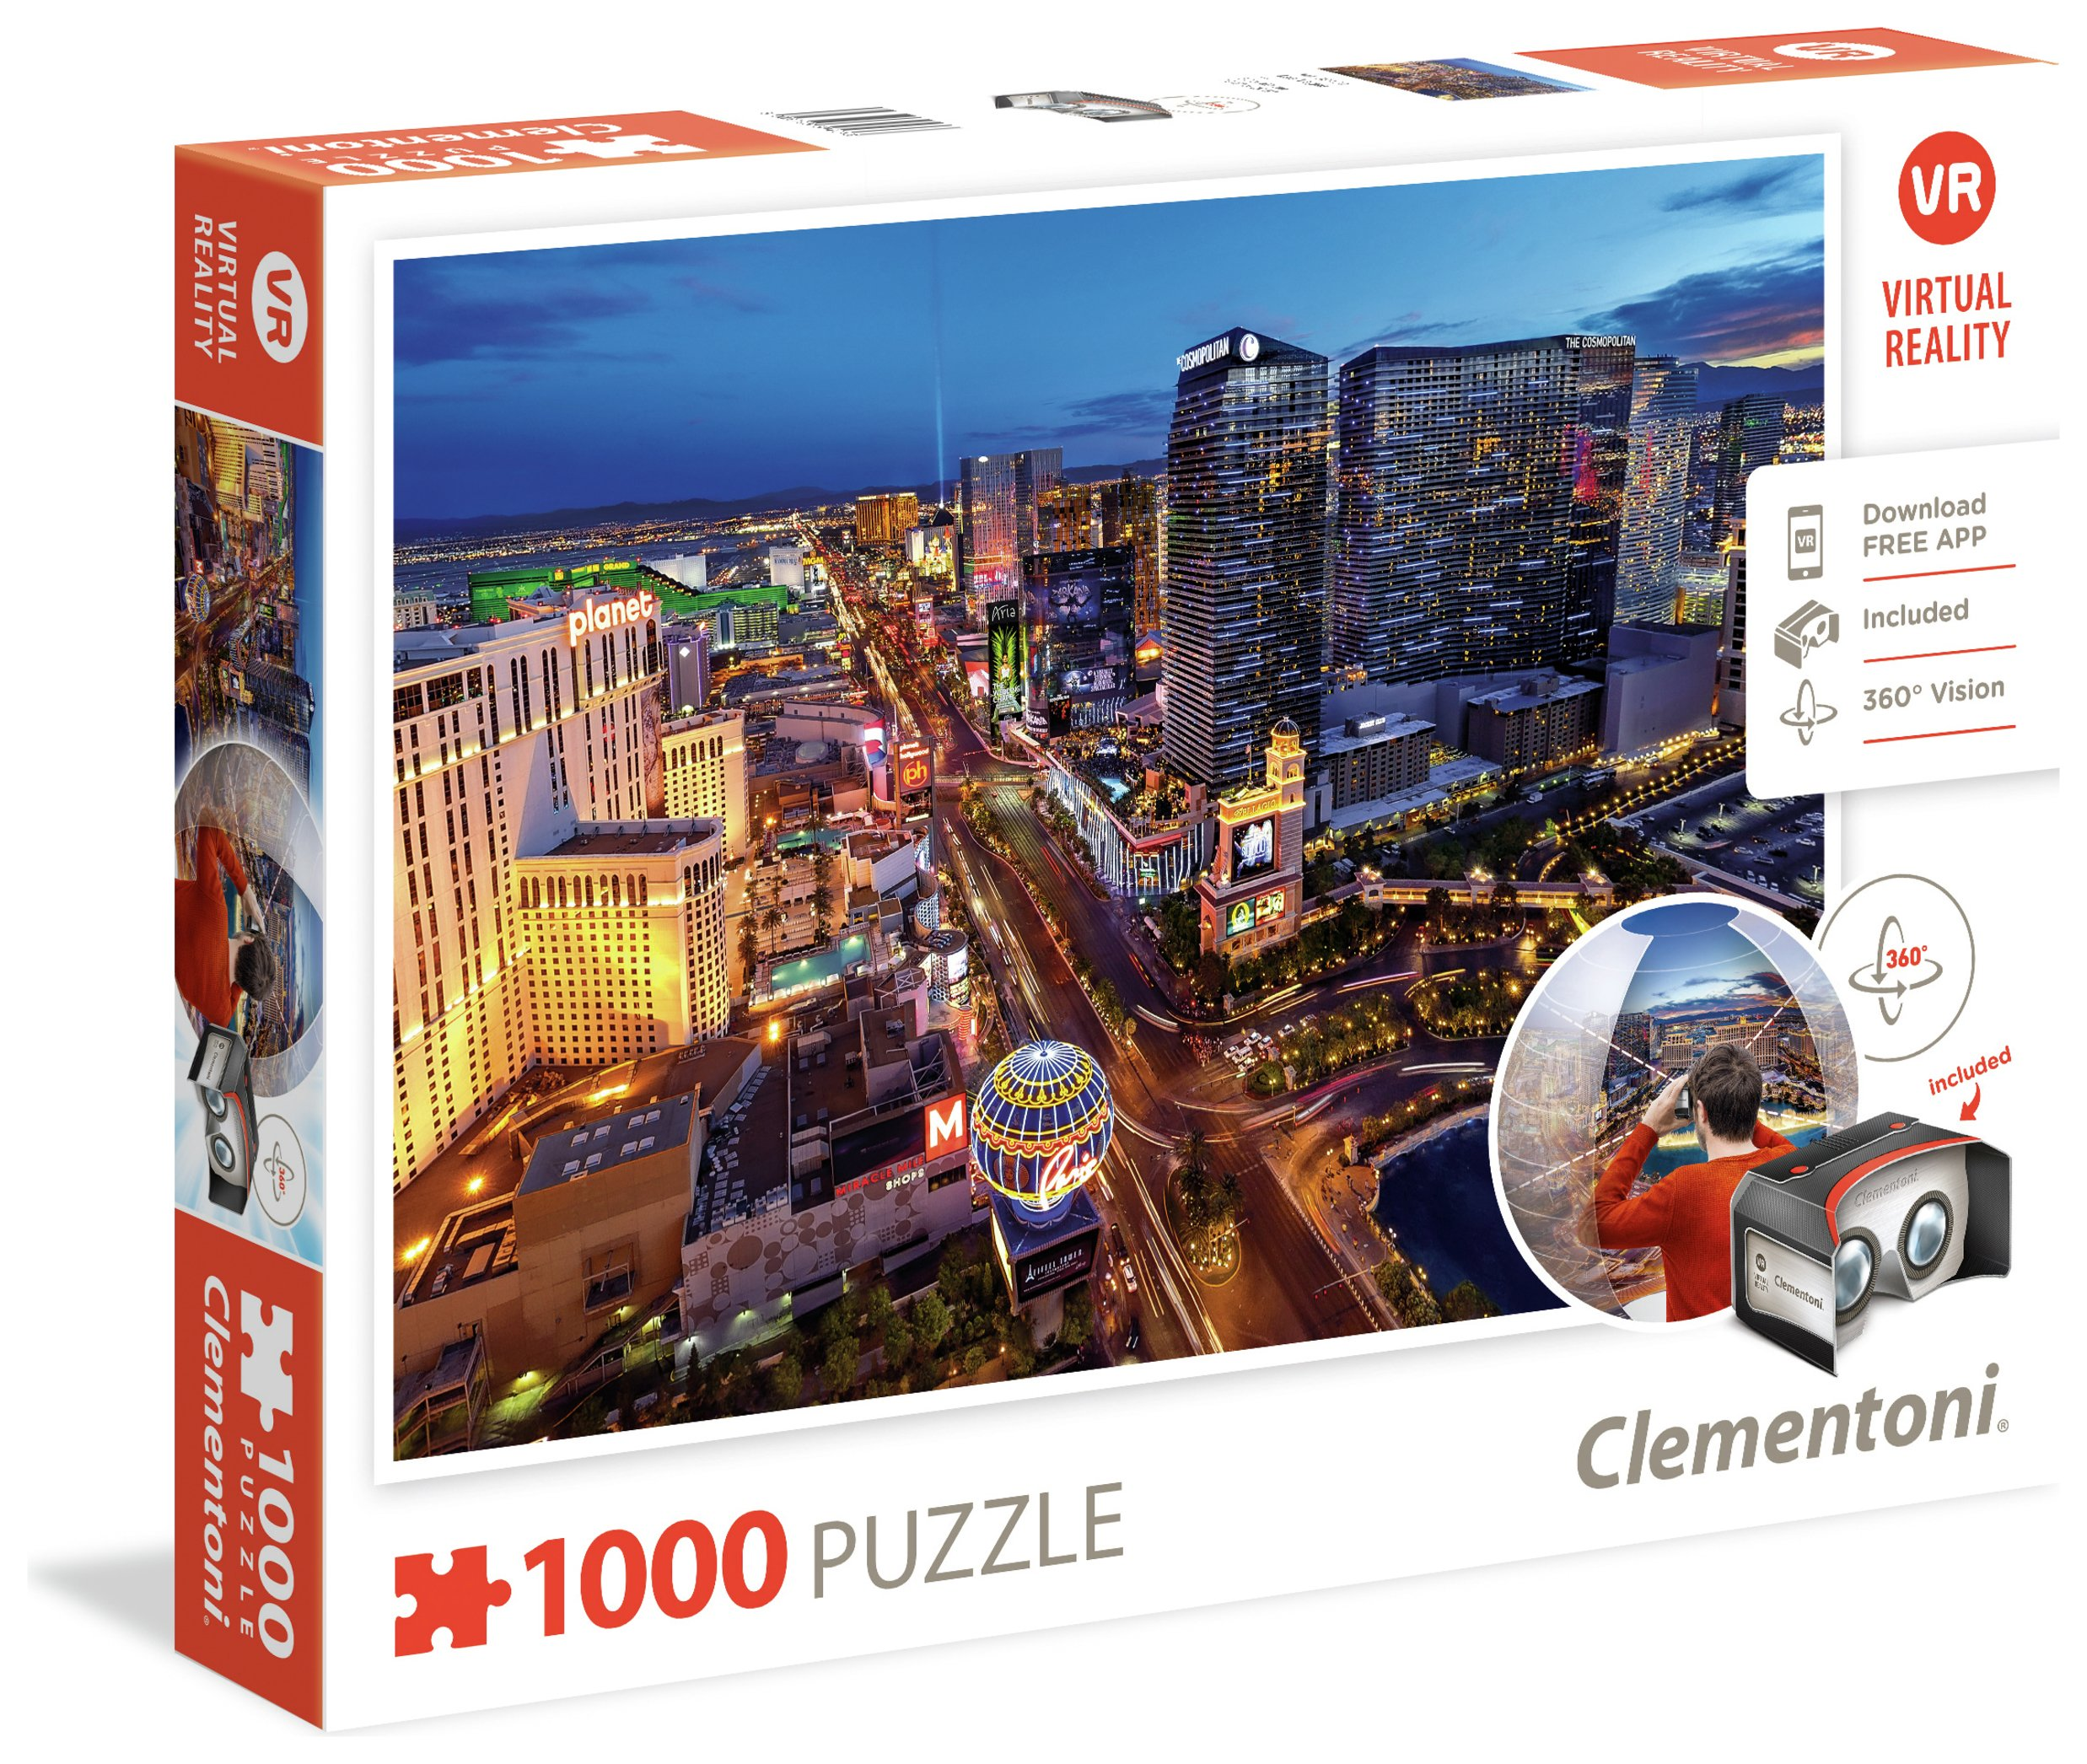 Image of Clementoni Virtual Reality 1000 Puzzle - Las Vegas